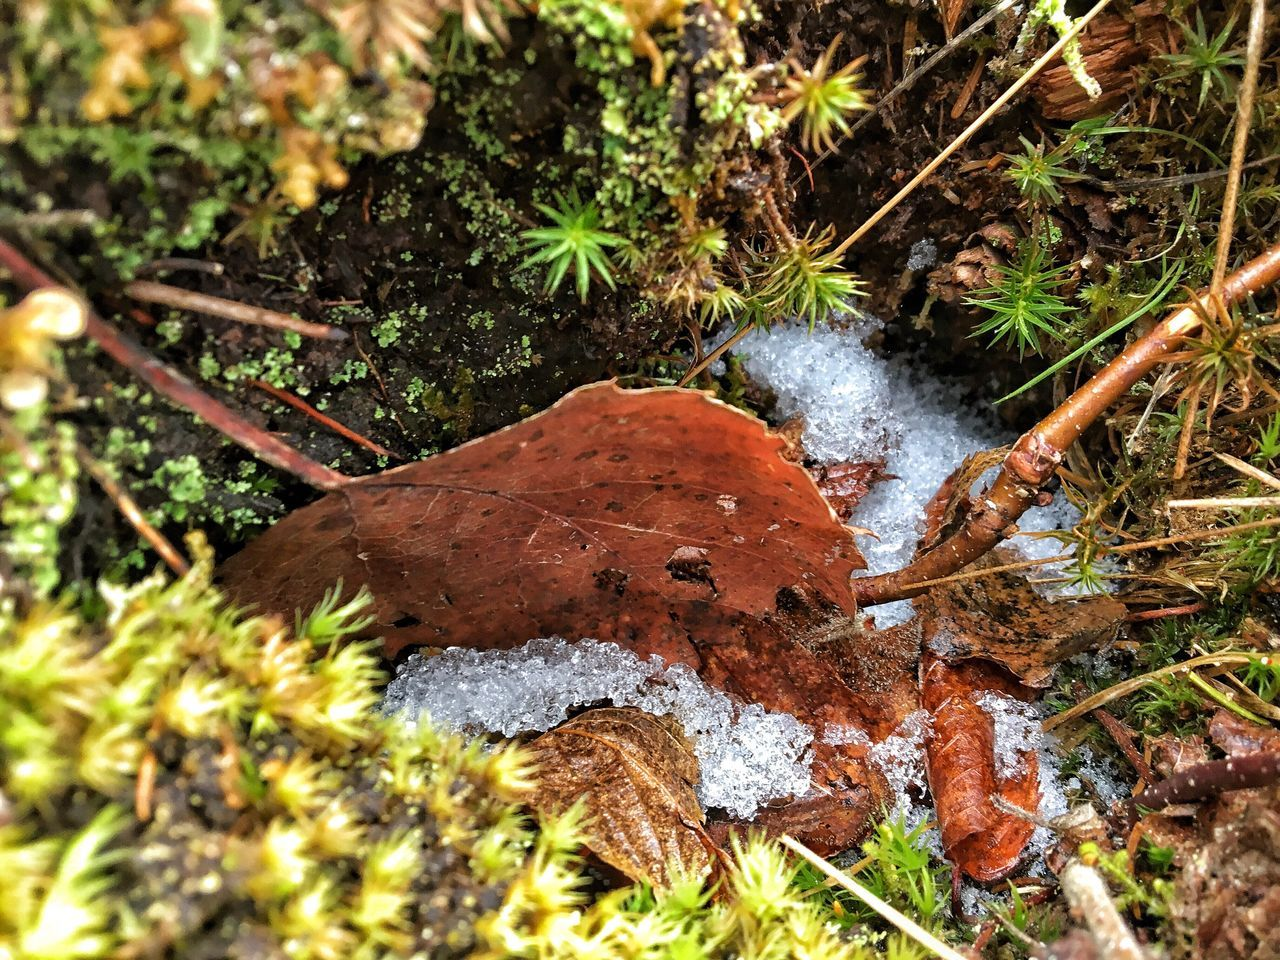 Outdoors Day Moss Ground Looking Down Winter Cold Temperature Ice Snow Nature Growth Beauty In Nature Forest Close-up Fine Art Photography Leaf Tranquility Water No People Tree Freshness